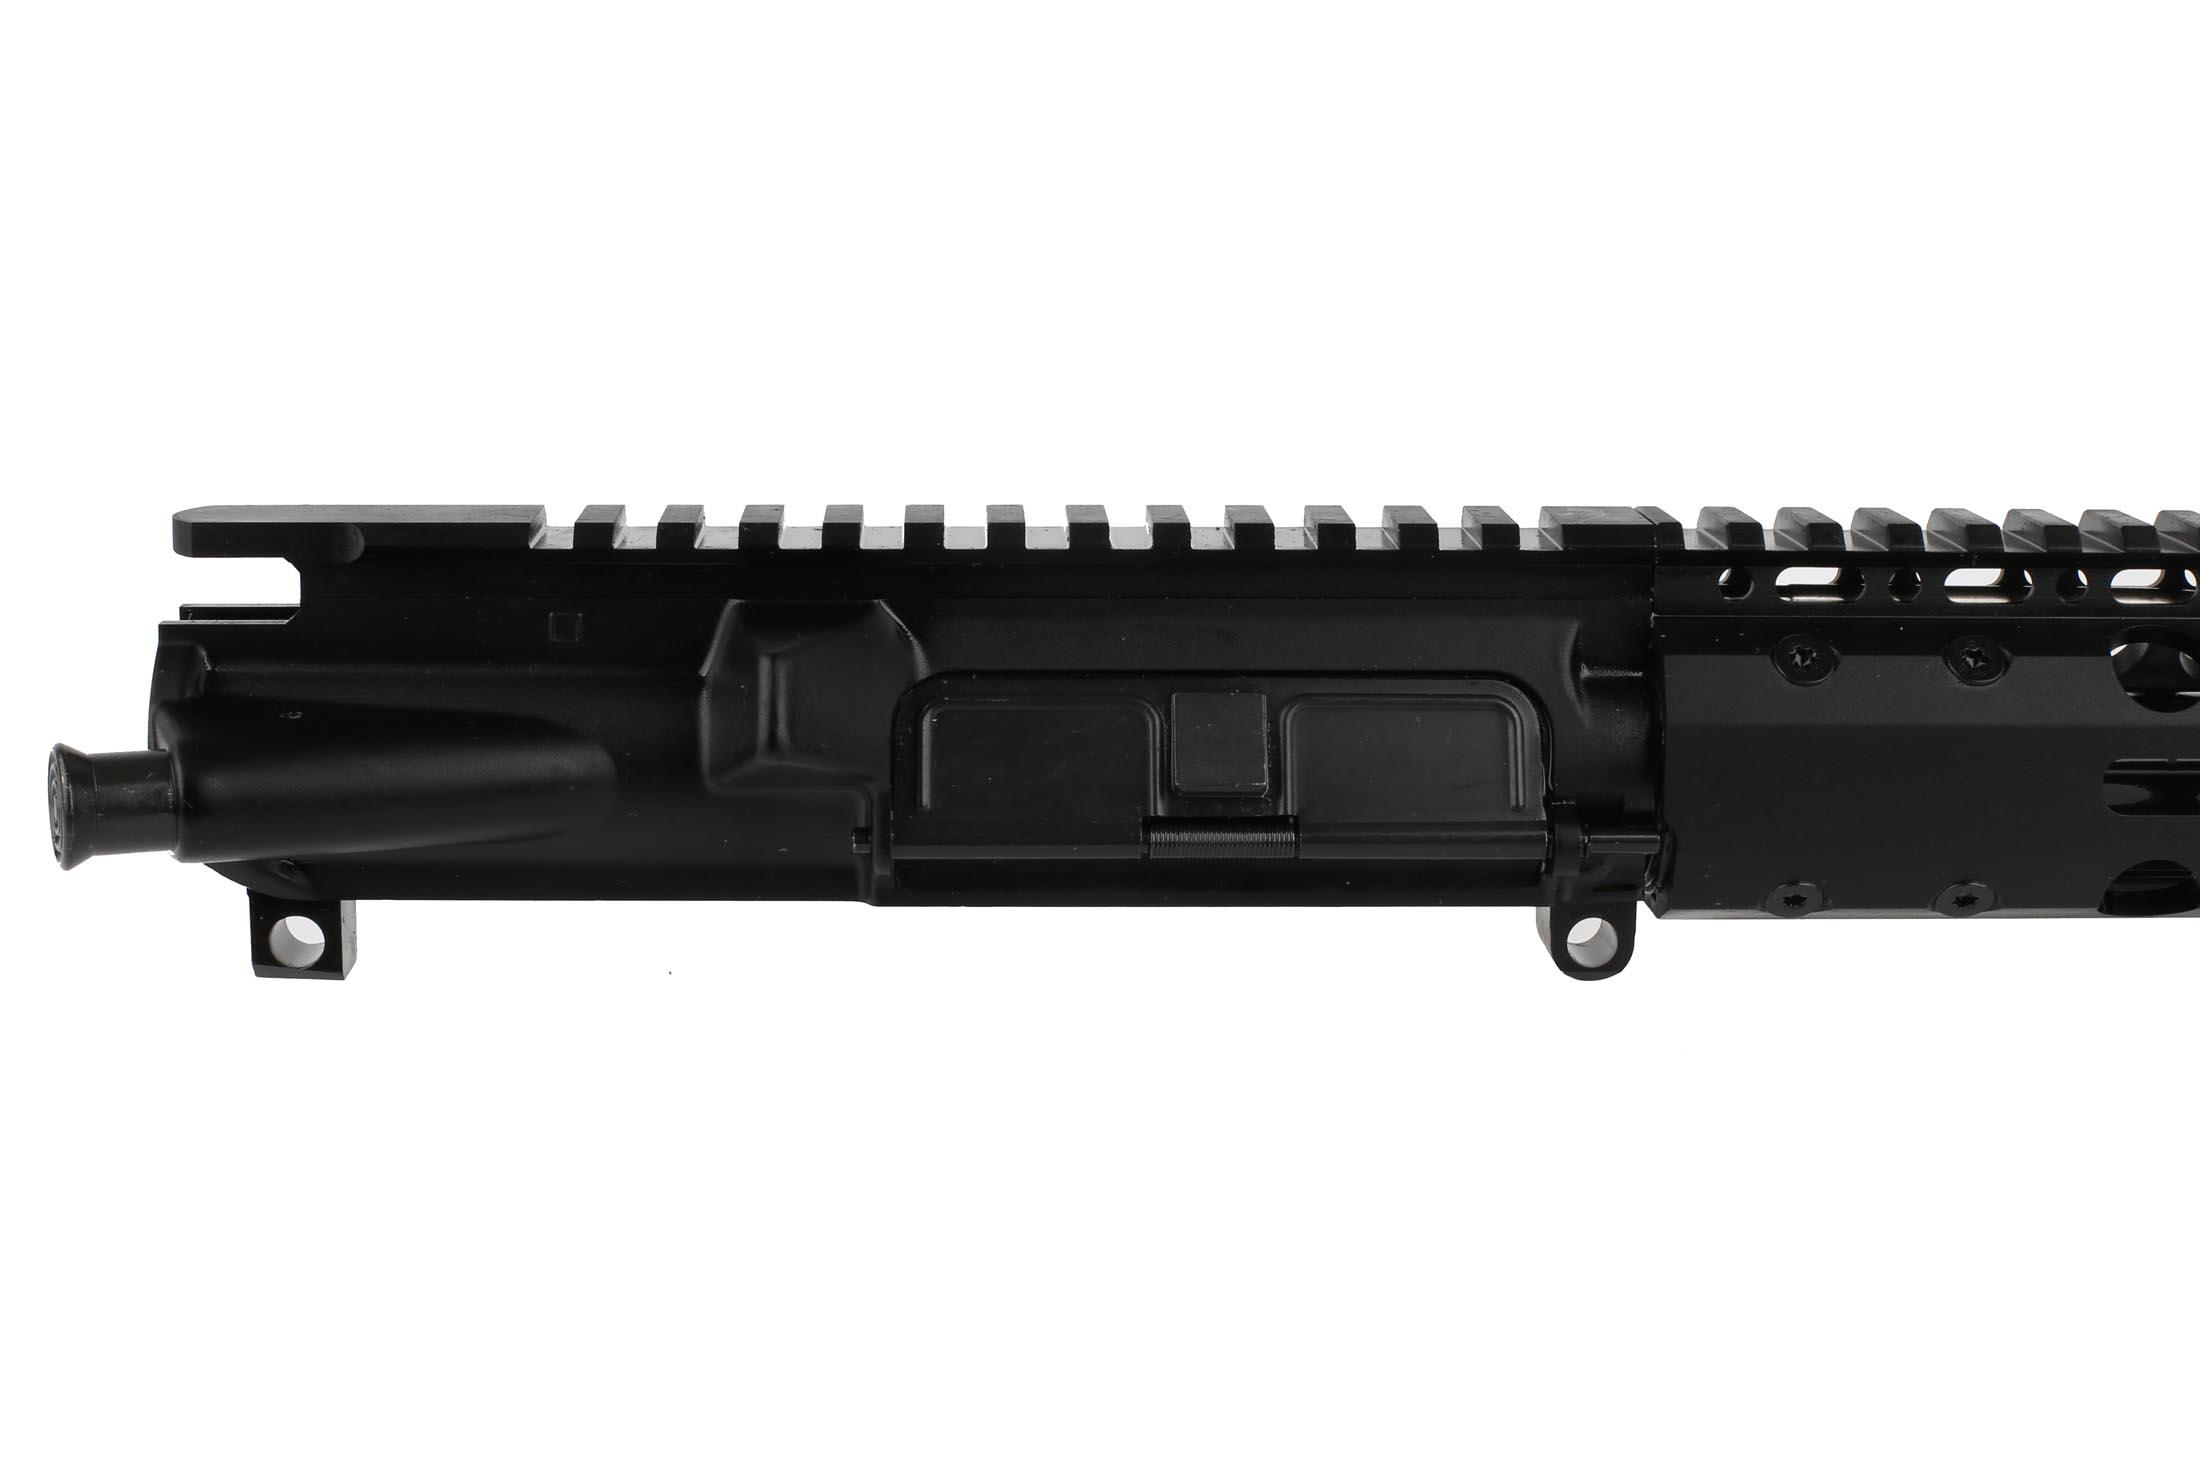 "Radical Firearms 10.5 5.56 NATO 1:7 Carbine Length M4 Barreled Upper - 10"" Primary Arms Exclusive M-LOK Rail"